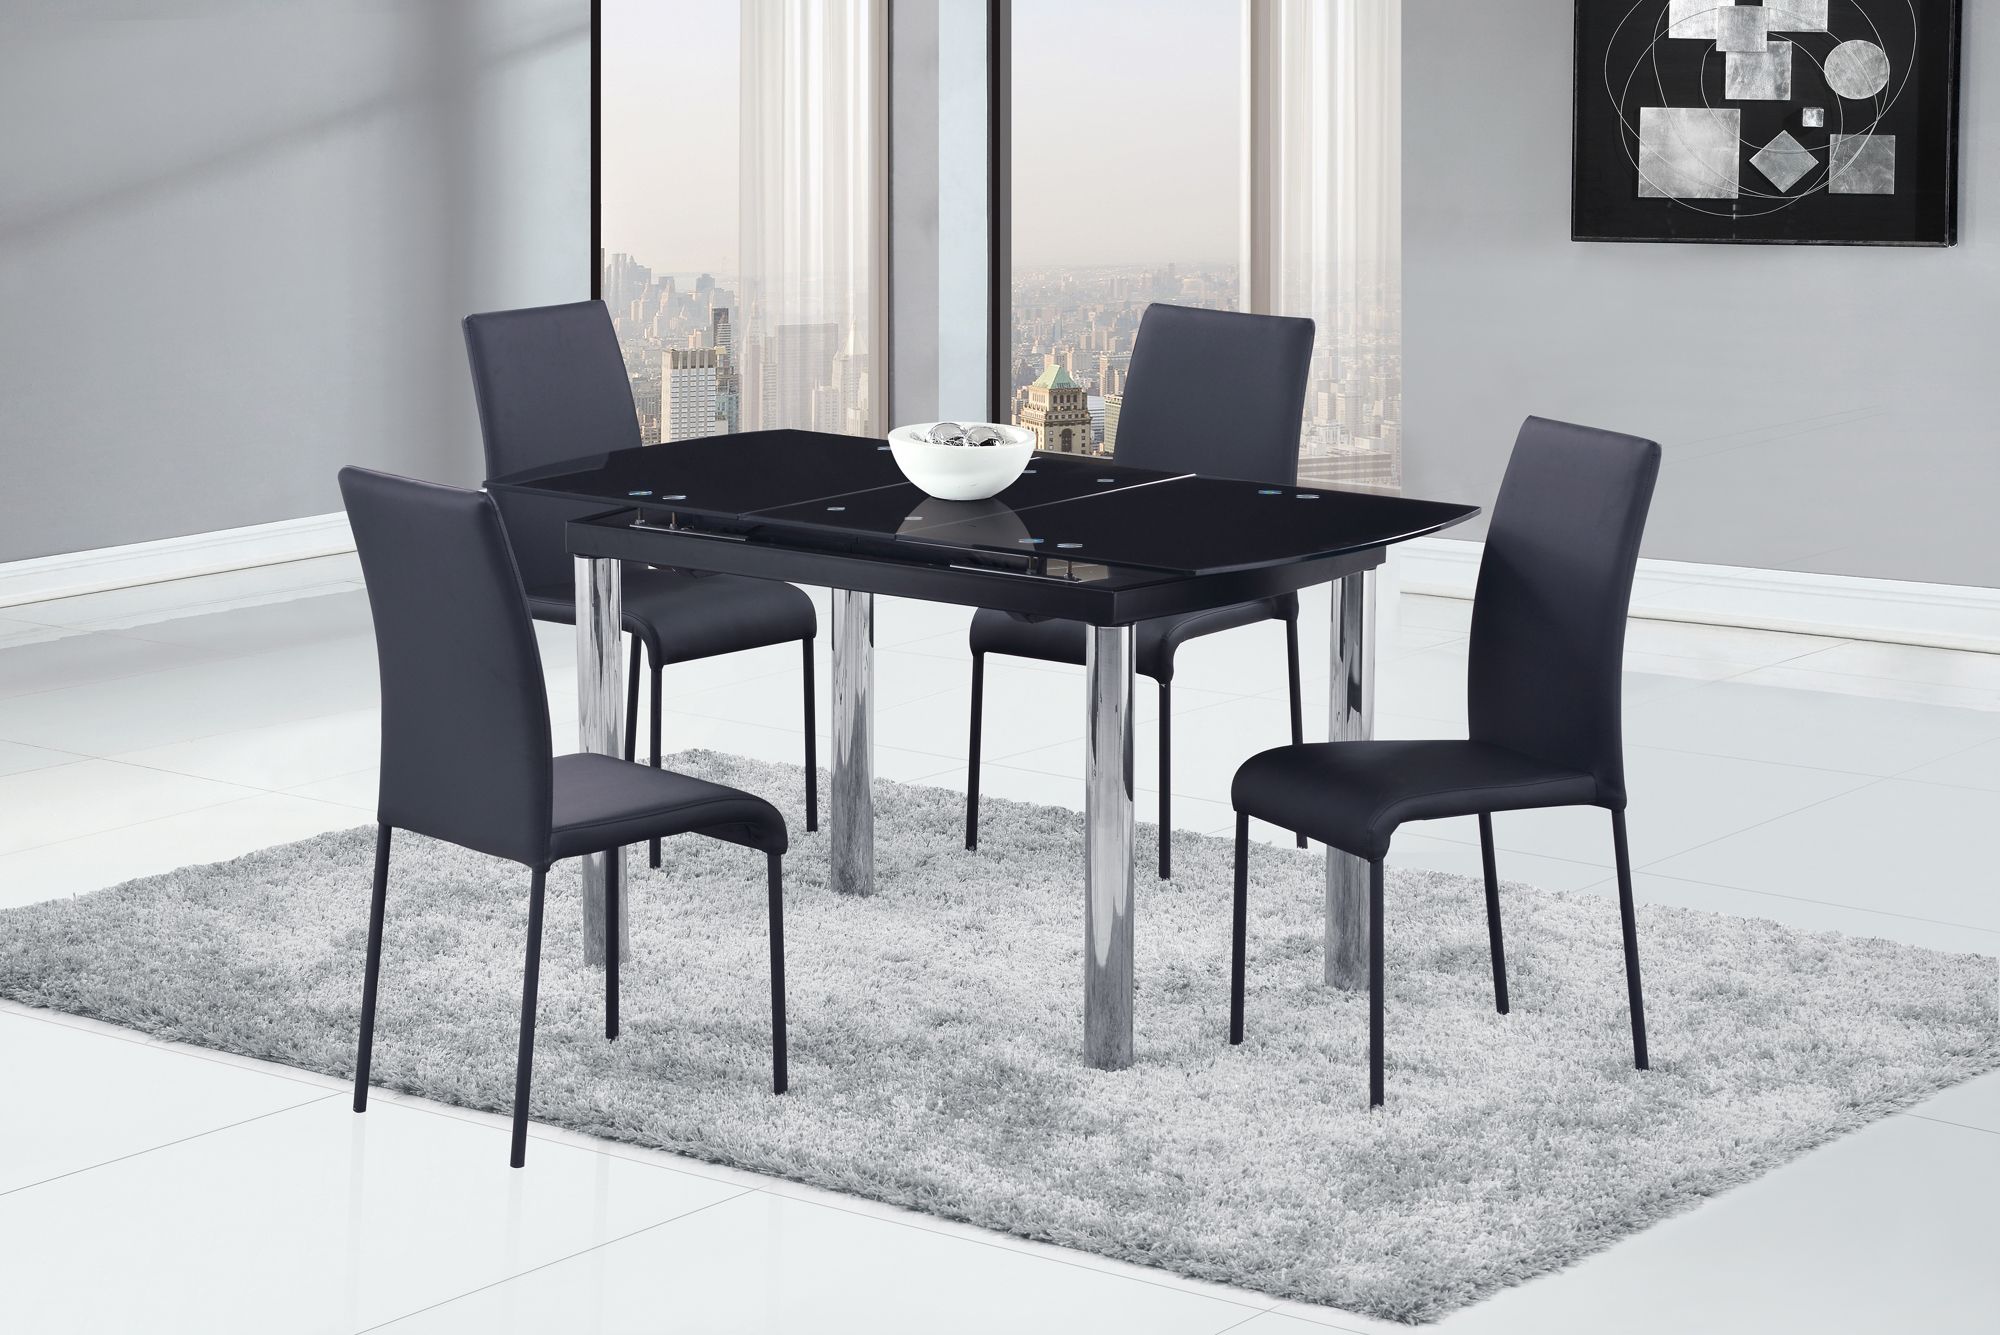 Dining Table D30DT ChromeBlack Glass Top by Global Furniture : D30DTD476DC from futonland.com size 2000 x 1335 jpeg 1367kB